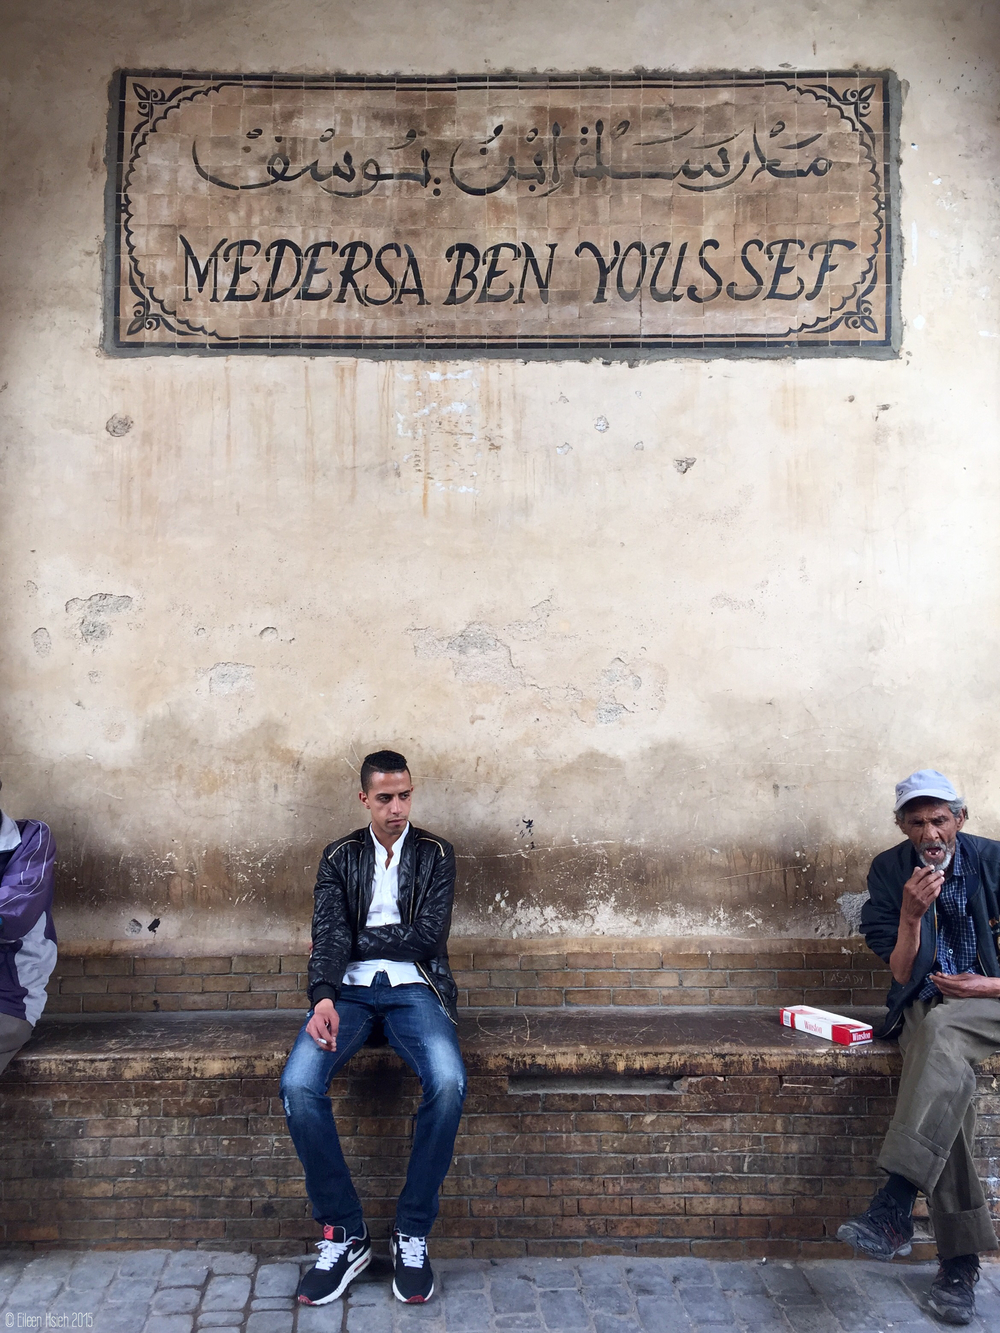 Men sitting outside of Ben Youssef Madrasa (also spelled Médersa Ben-Youssef), once the largest Islamic college in North Africa.  坐在 Ben Youssef Madrasa 外小歇的居民,這兒曾是北非最大的 伊斯蘭神學院。